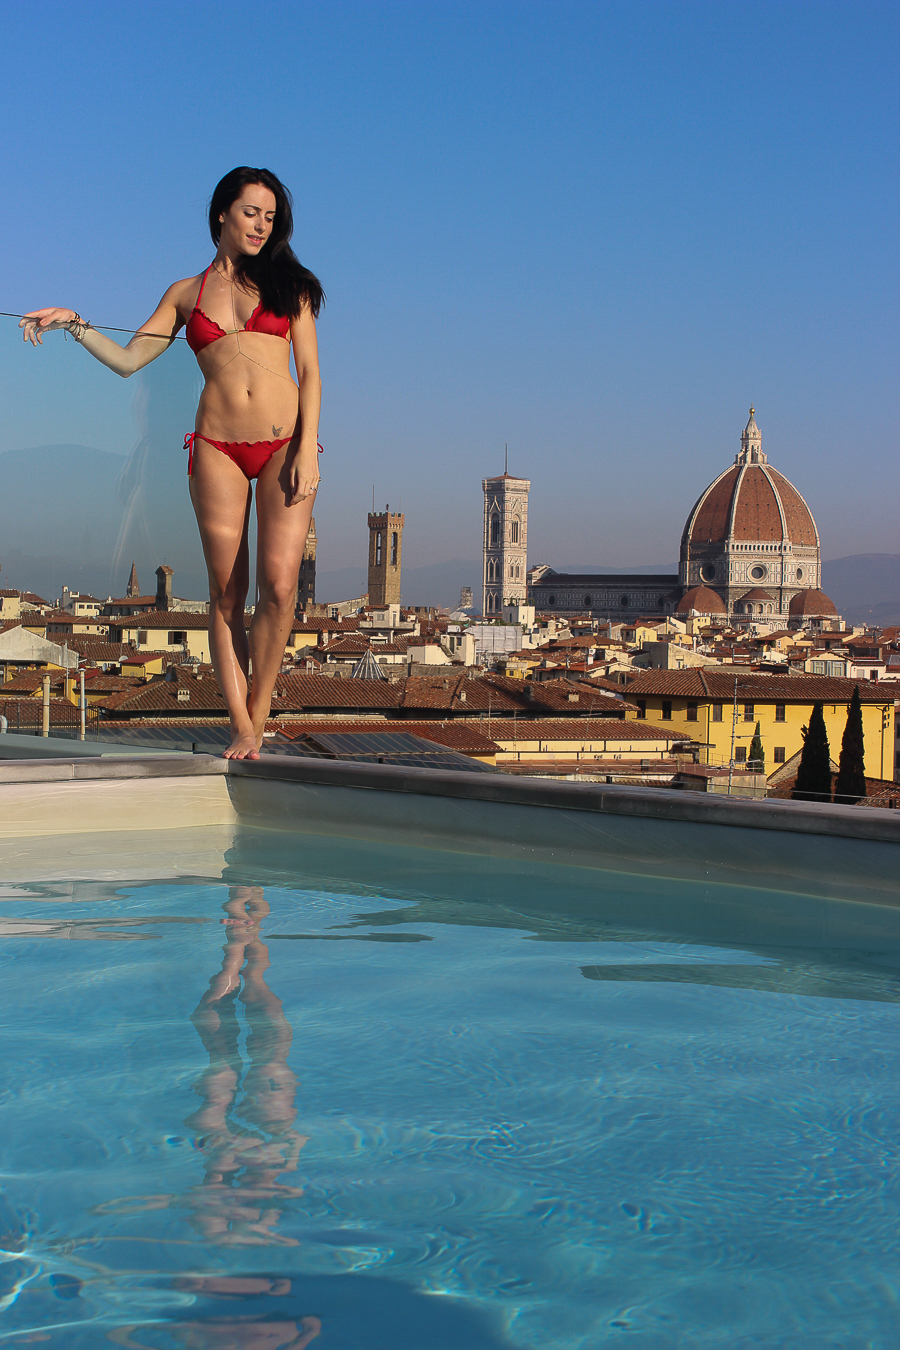 Travel Blog Florence - Clutch and carry on - sabrina chakici - fashion blogger - hotel luchessi-11